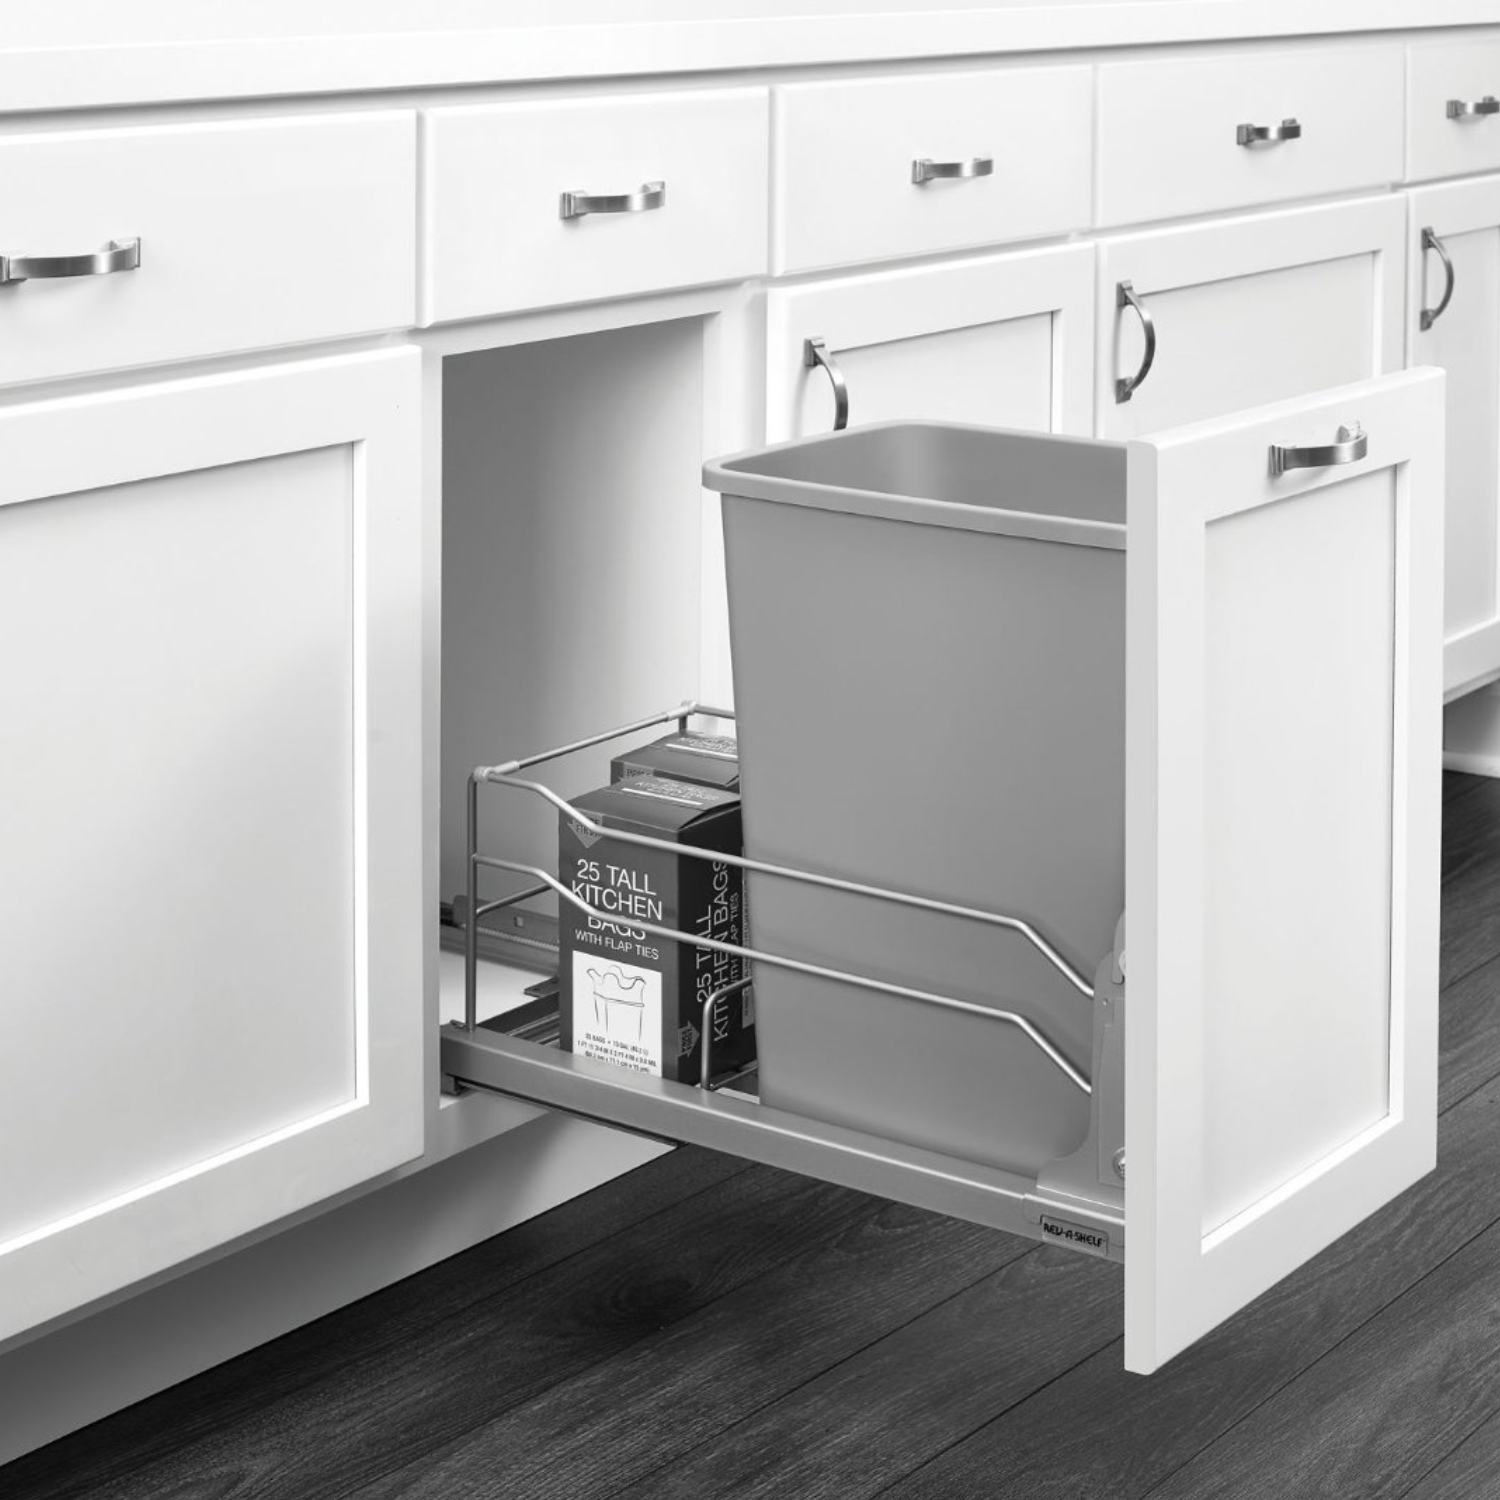 "Rev-A-Shelf RV53WC Single 35 Quart Undermount Waste Container w/Soft-Close Pullout, 11-1/2"" , Silver"